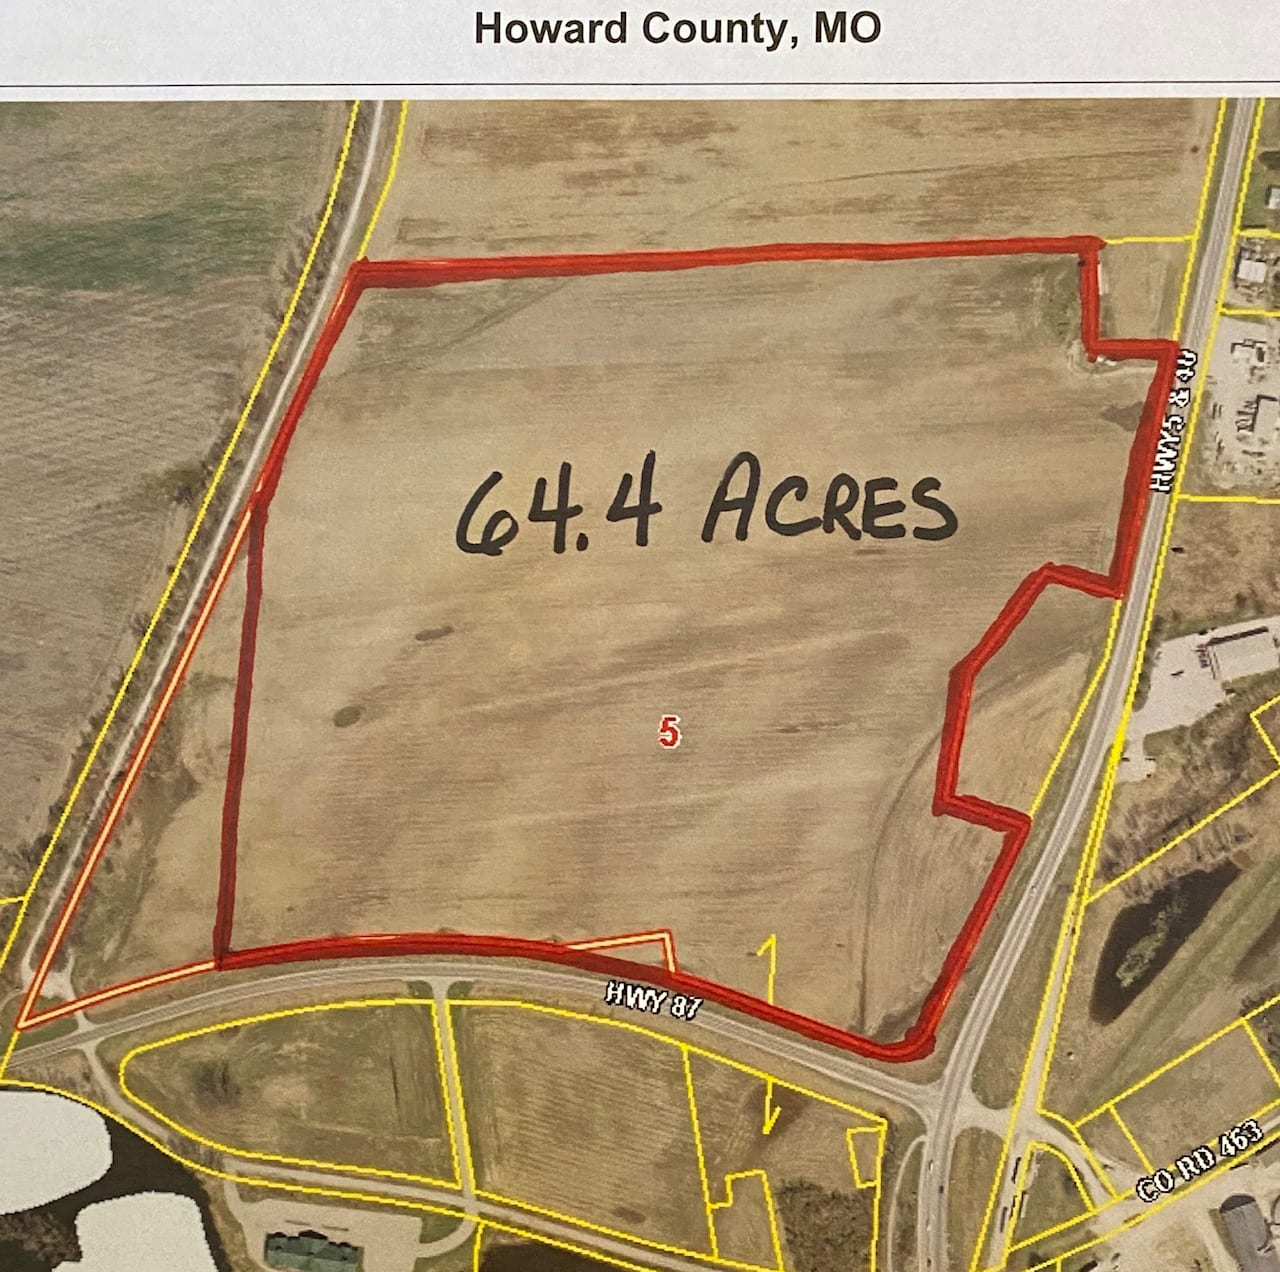 SOLD 2020…LAND AUCTION ….March 18, 2020 @ 10:00 a.m.  64.4 Acres m/l of good river bottom farm land.